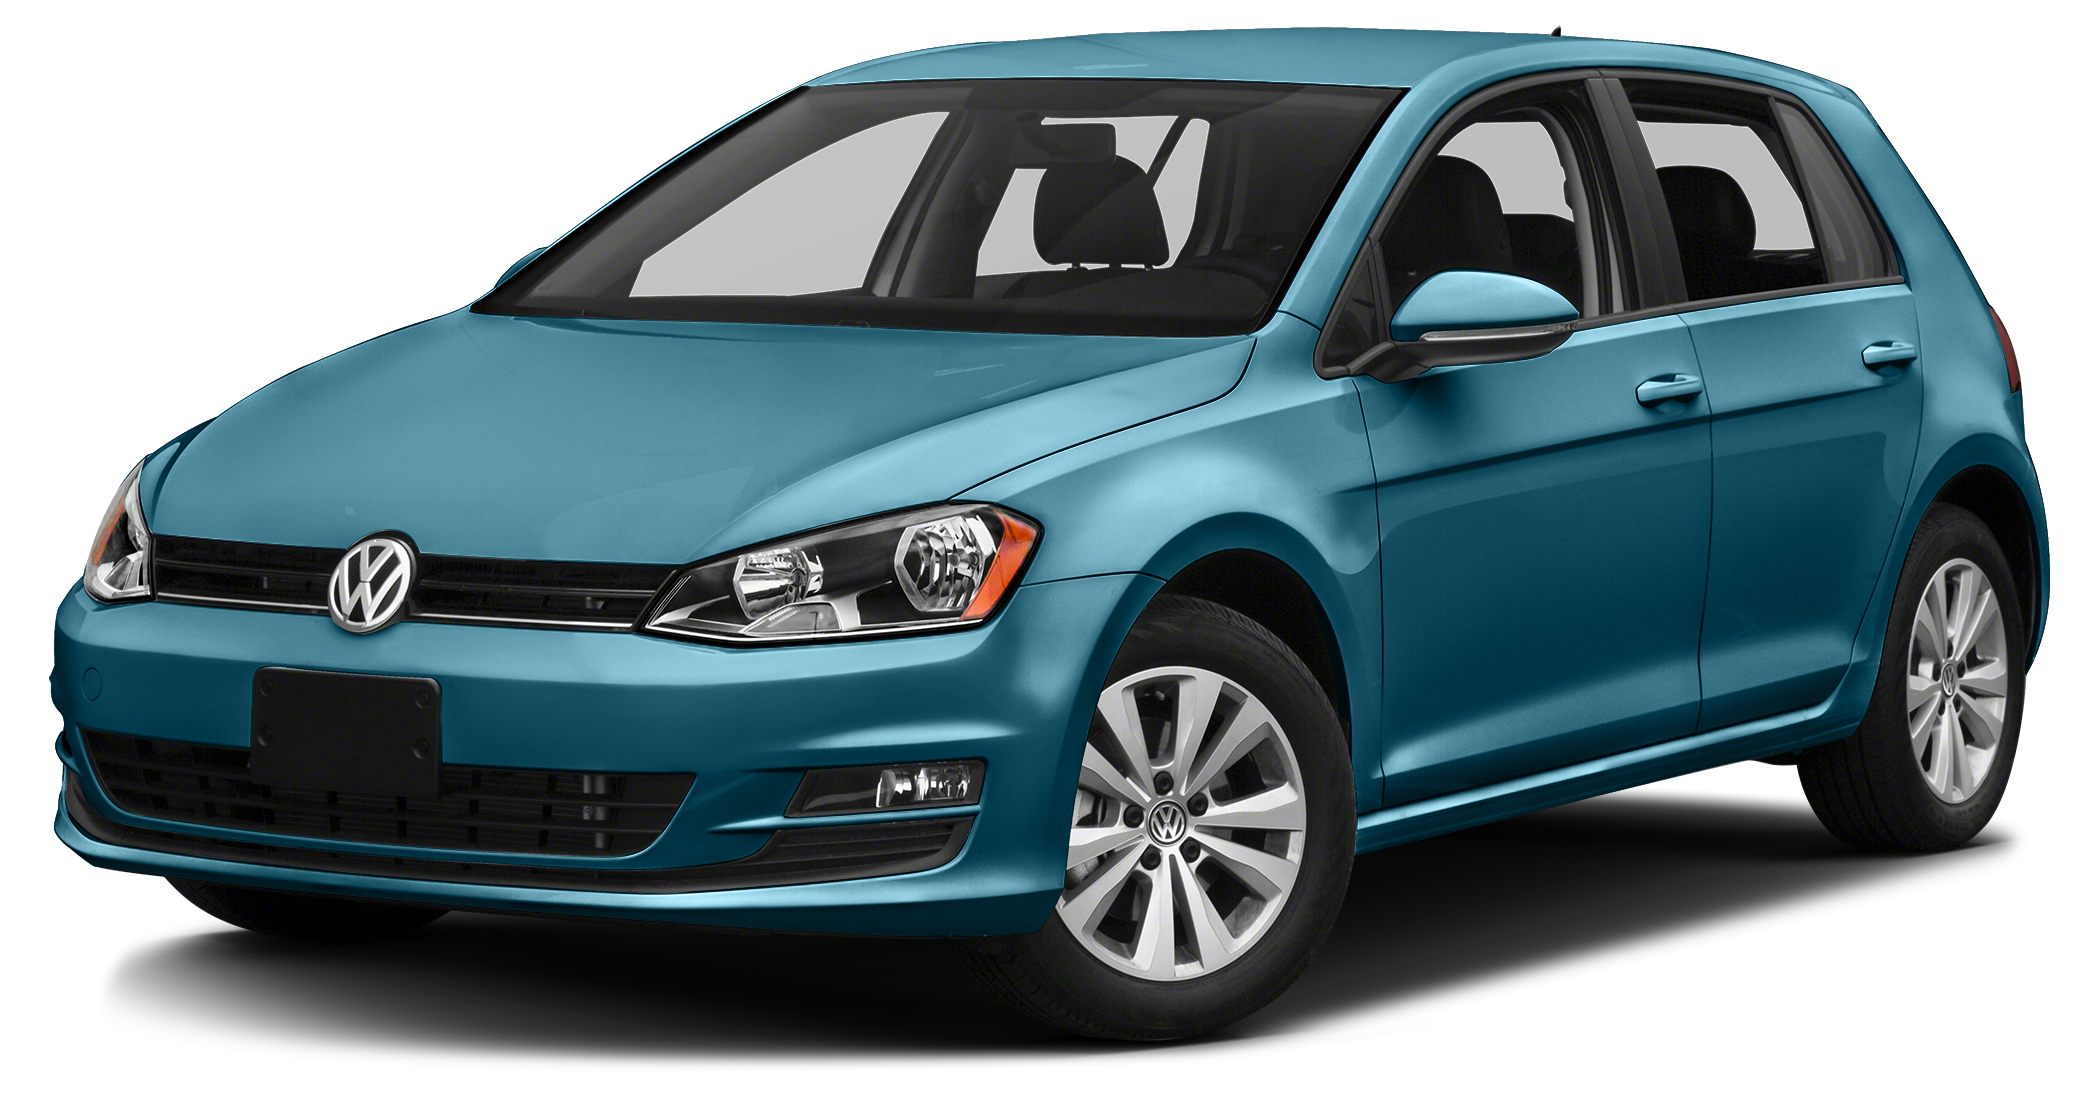 2016 Volkswagen Golf TSI S 4-Door WE SELL OUR VEHICLES AT WHOLESALE PRICES AND STAND BEHIND OUR CA